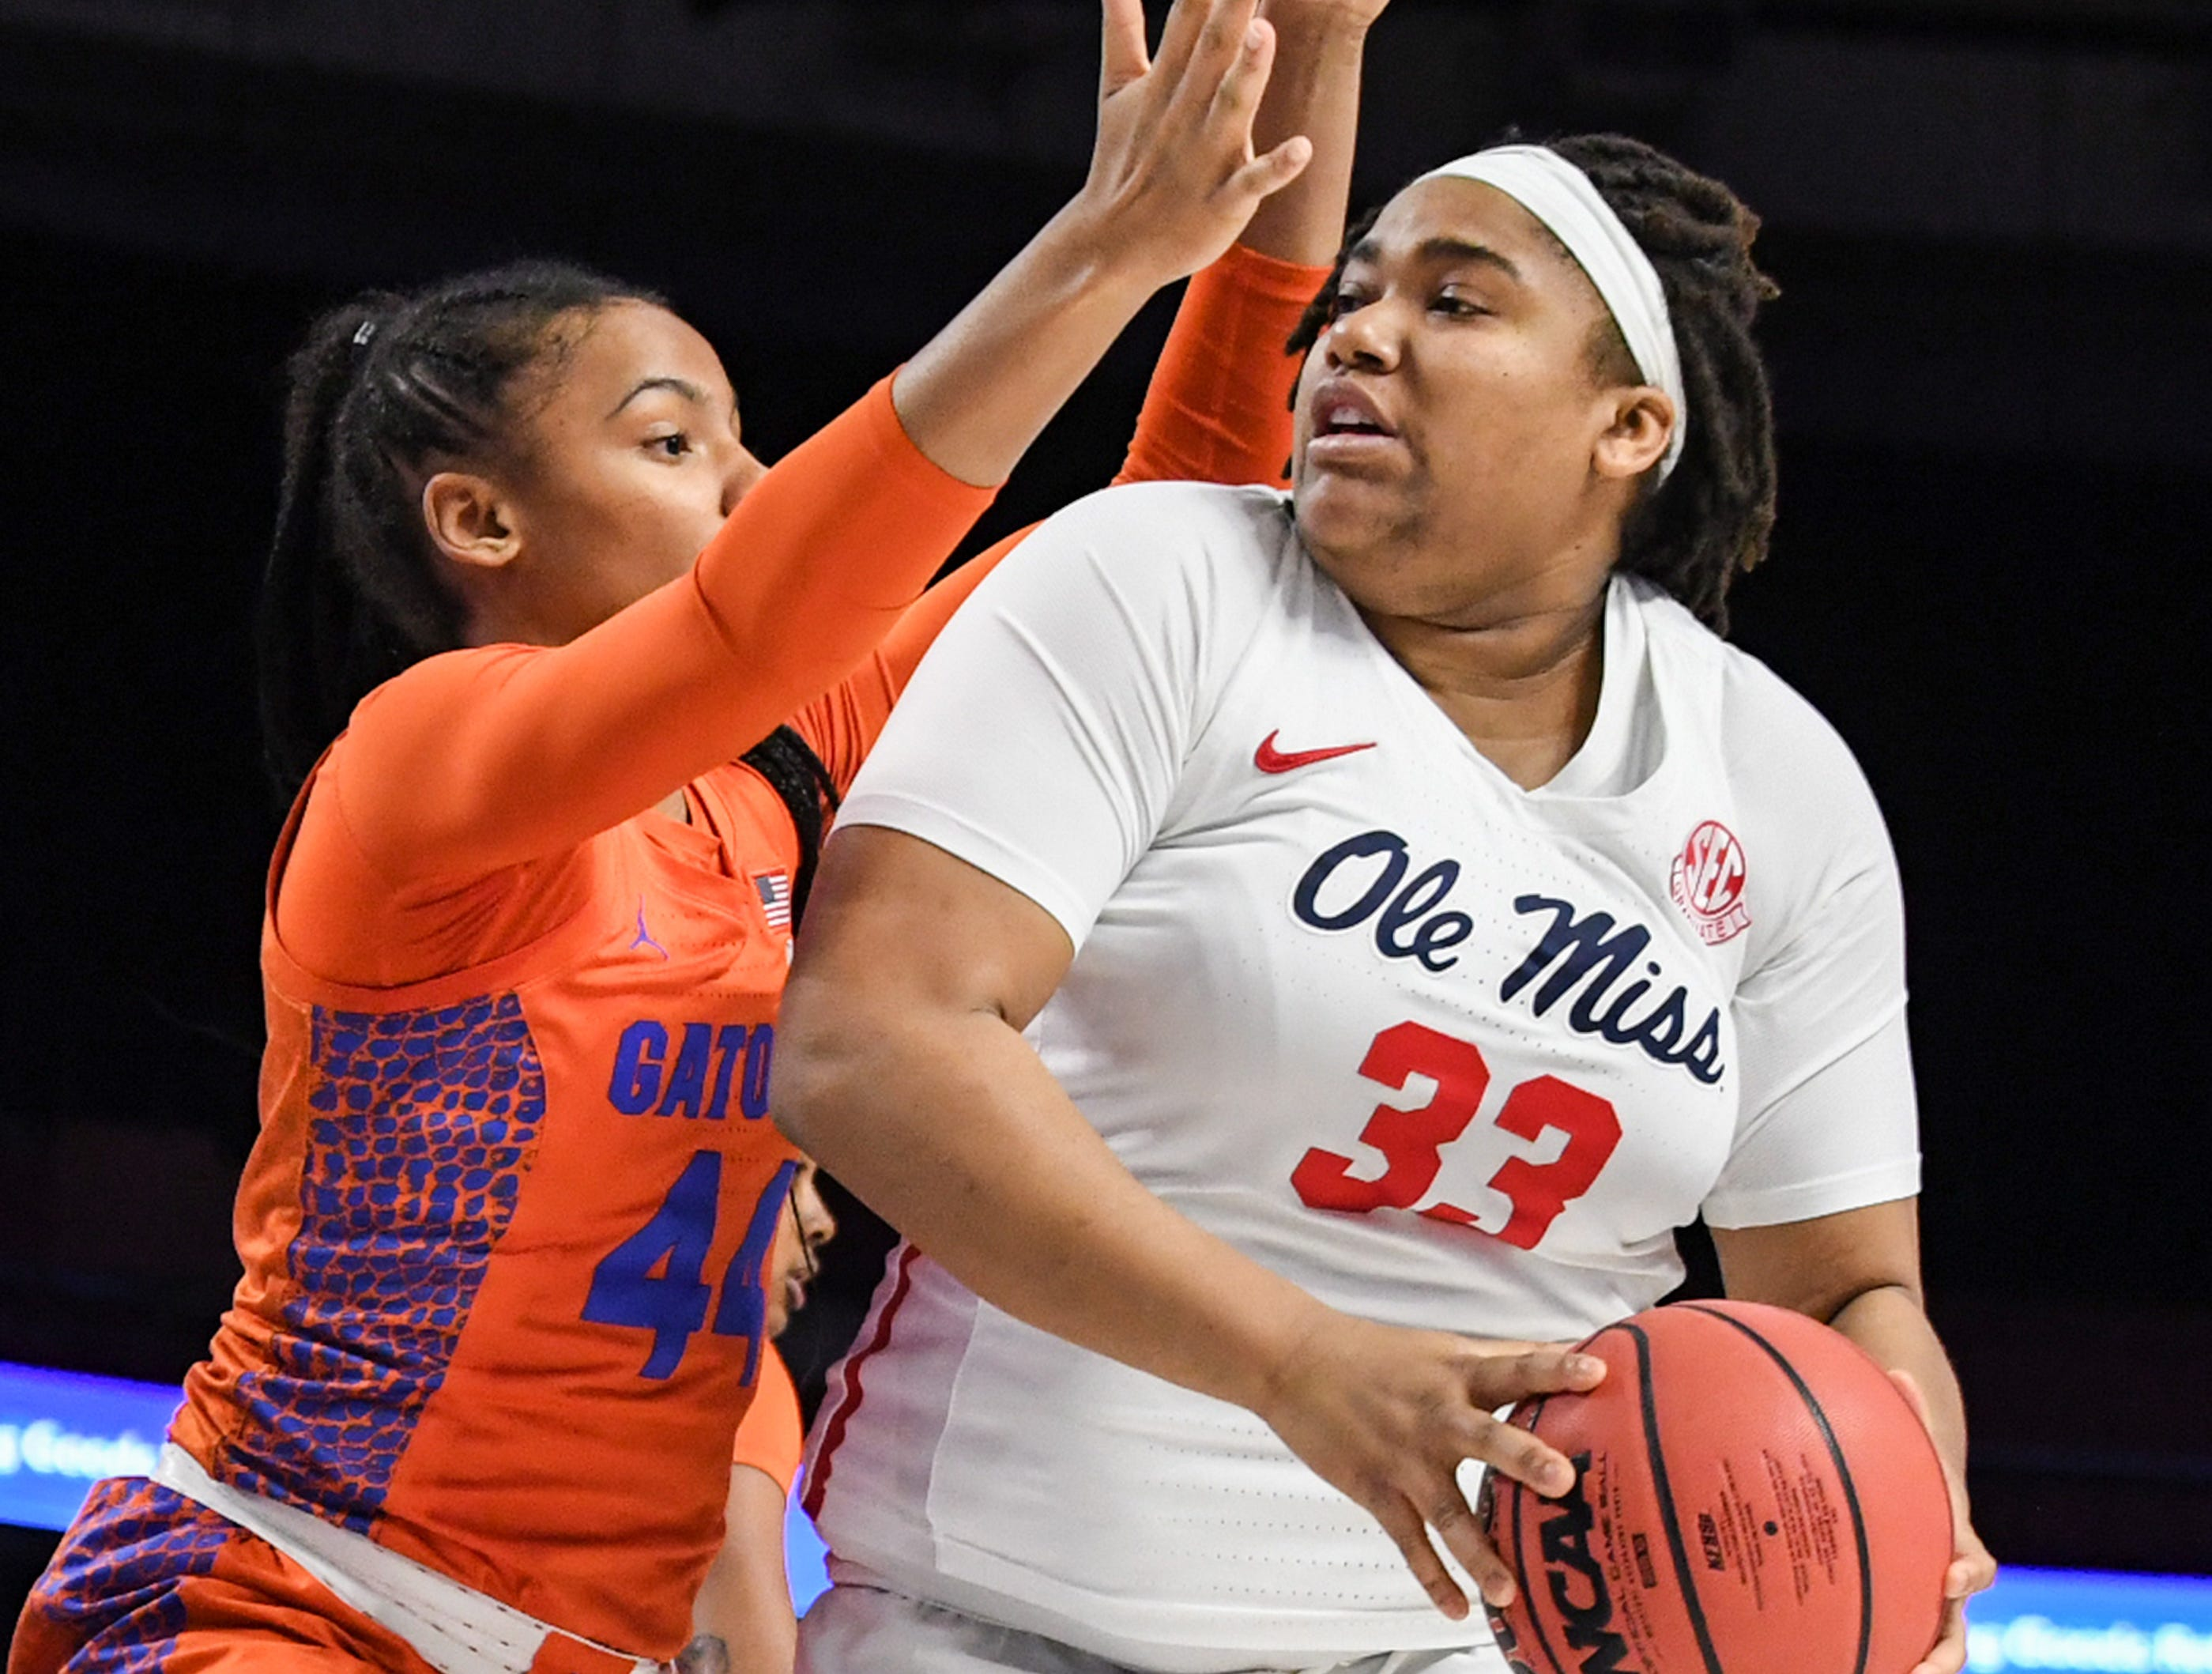 Florida forward Paige Robinson(44) pressures Ole Miss senior La'Karis Salter(33) during the fourth quarter of the Southeastern Conference Women's Tournament game at Bon Secour Wellness Arena in Greenville Wednesday, March 6, 2019.